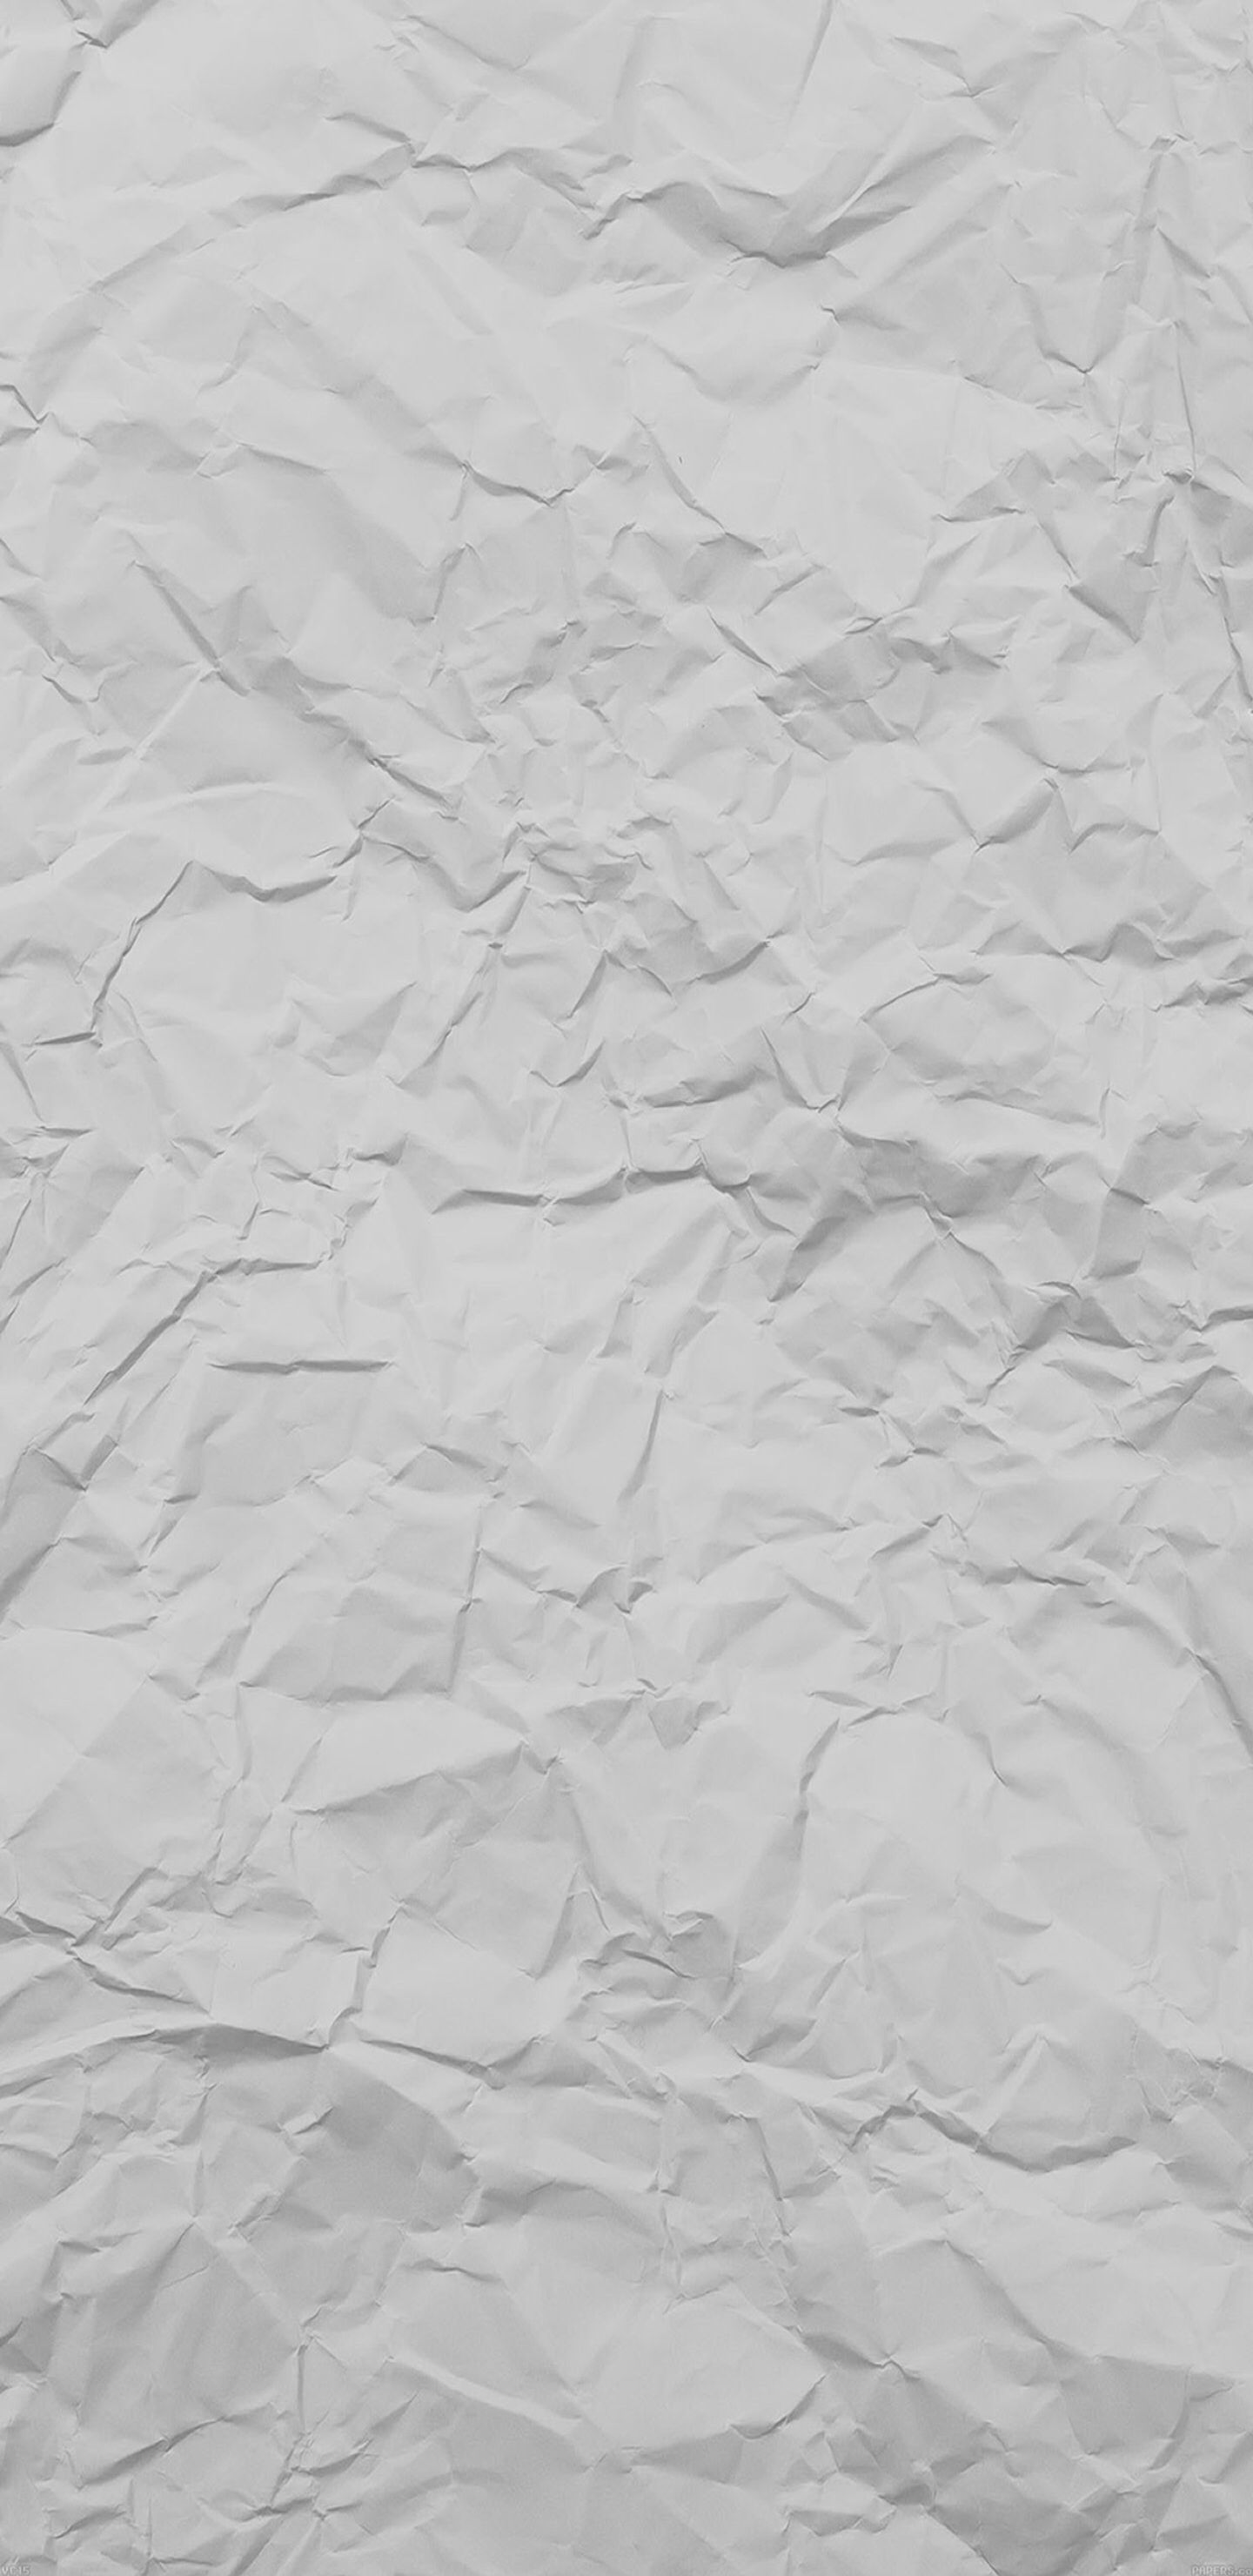 1440x2960 S8, wallpaper, background, paper, texture, calming, white ...